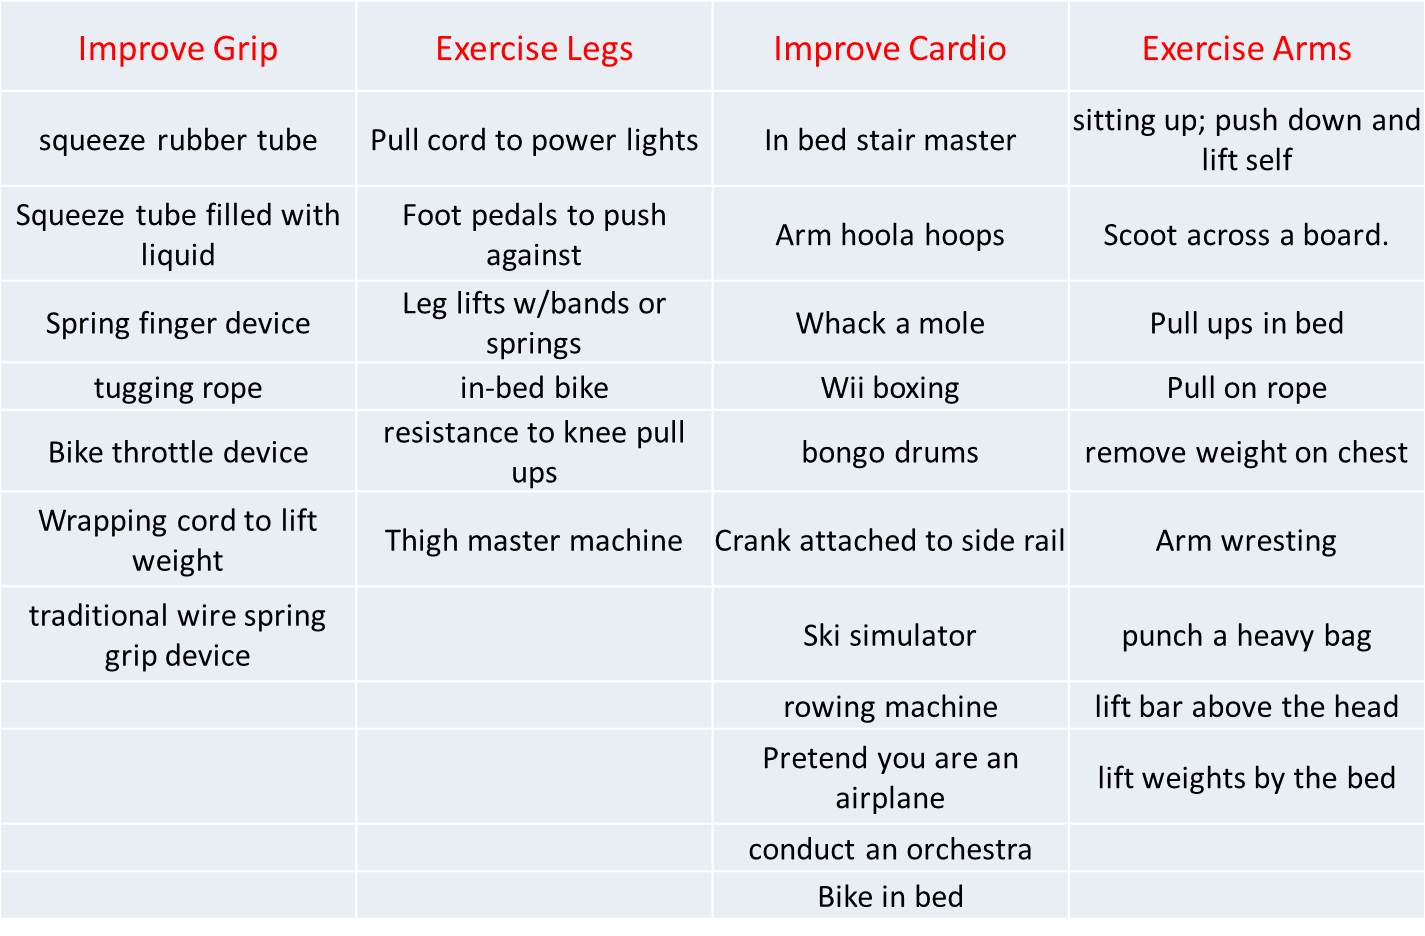 Morphological matrix for exercise product